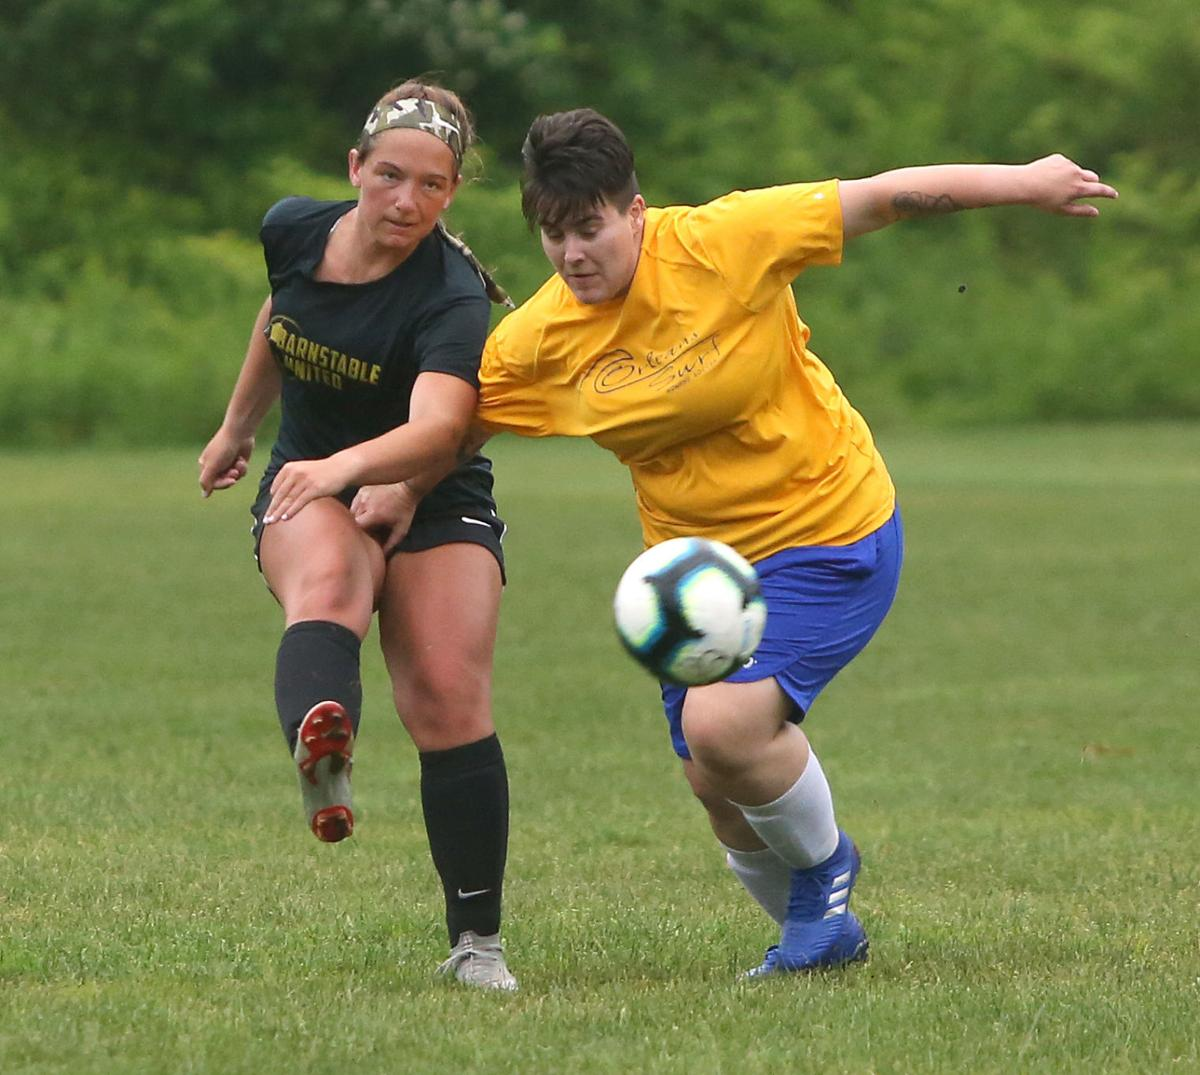 United Women Fall To Lower Cape, 3-1